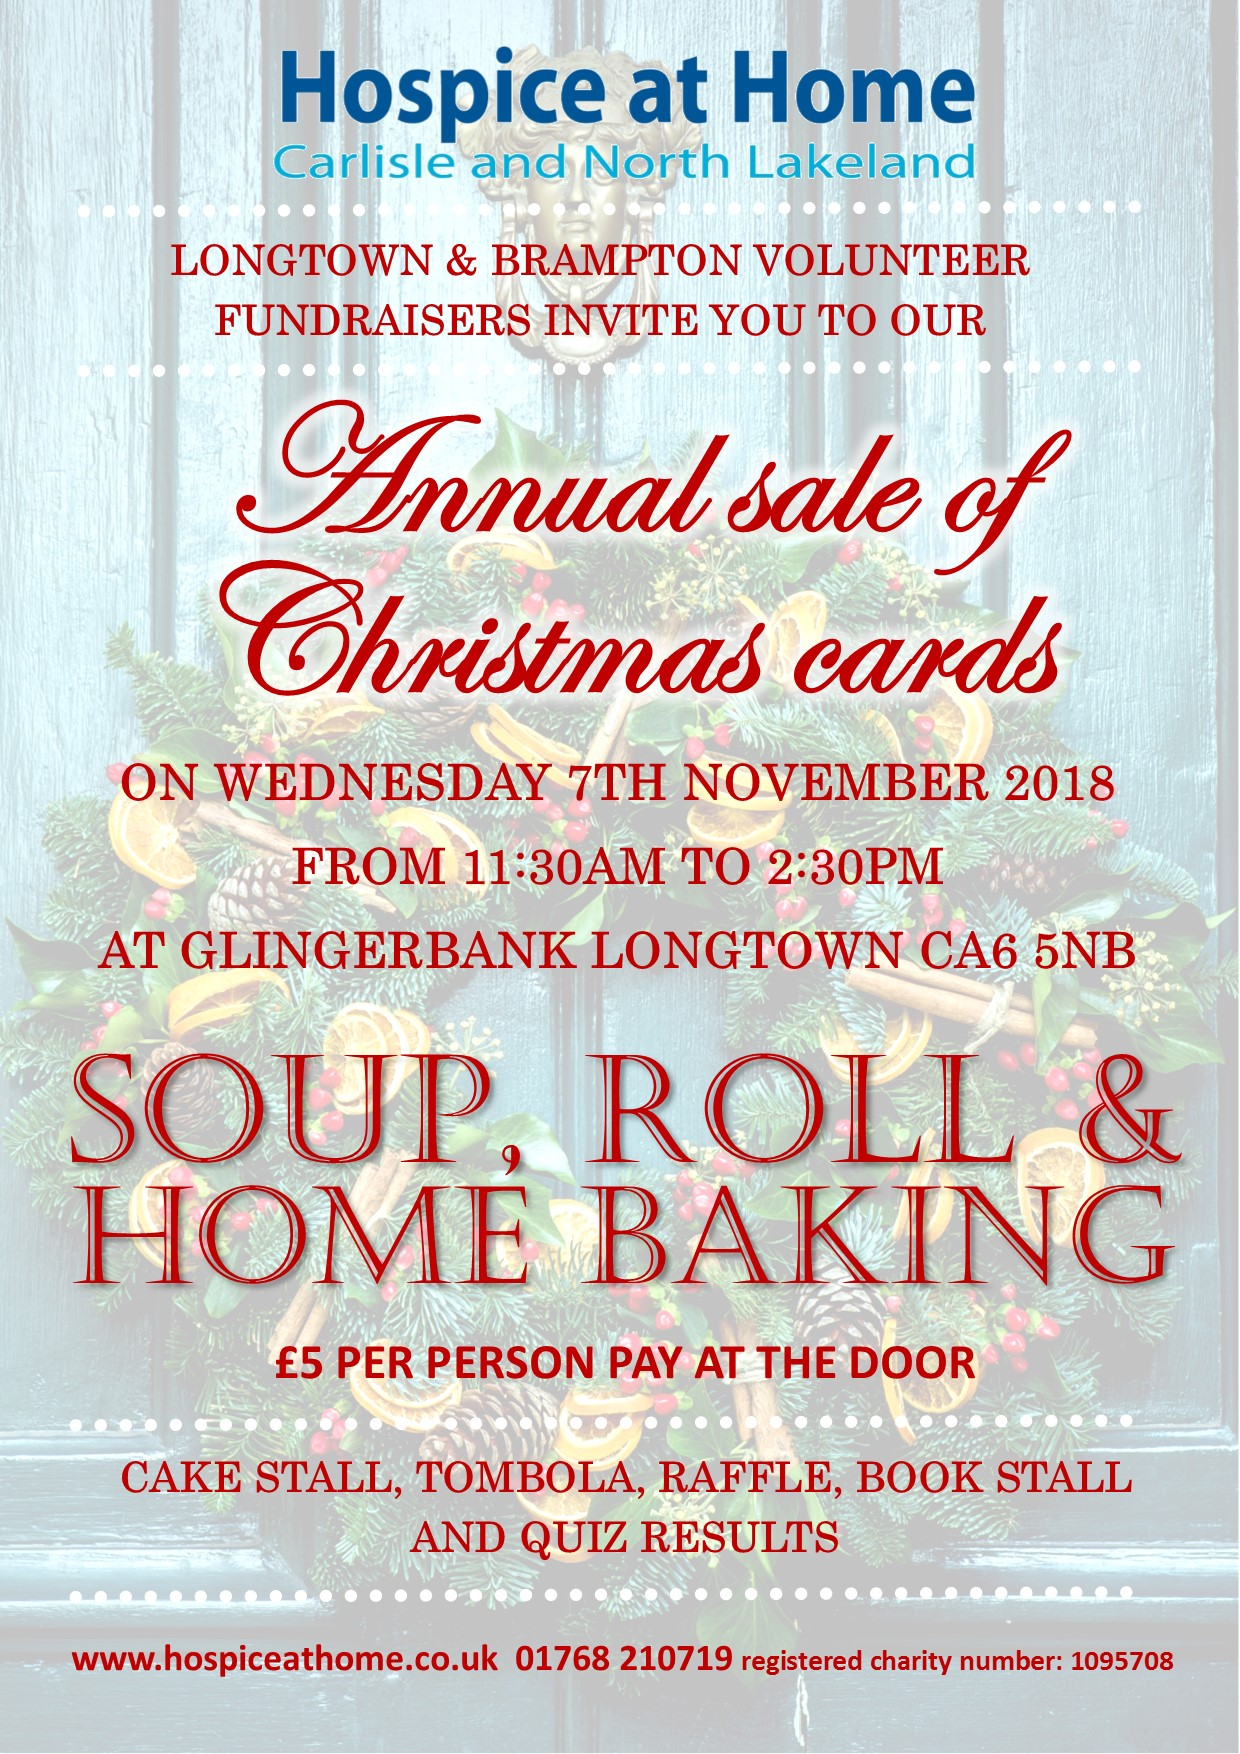 Annual sale of Christmas Cards – Hospice at Home